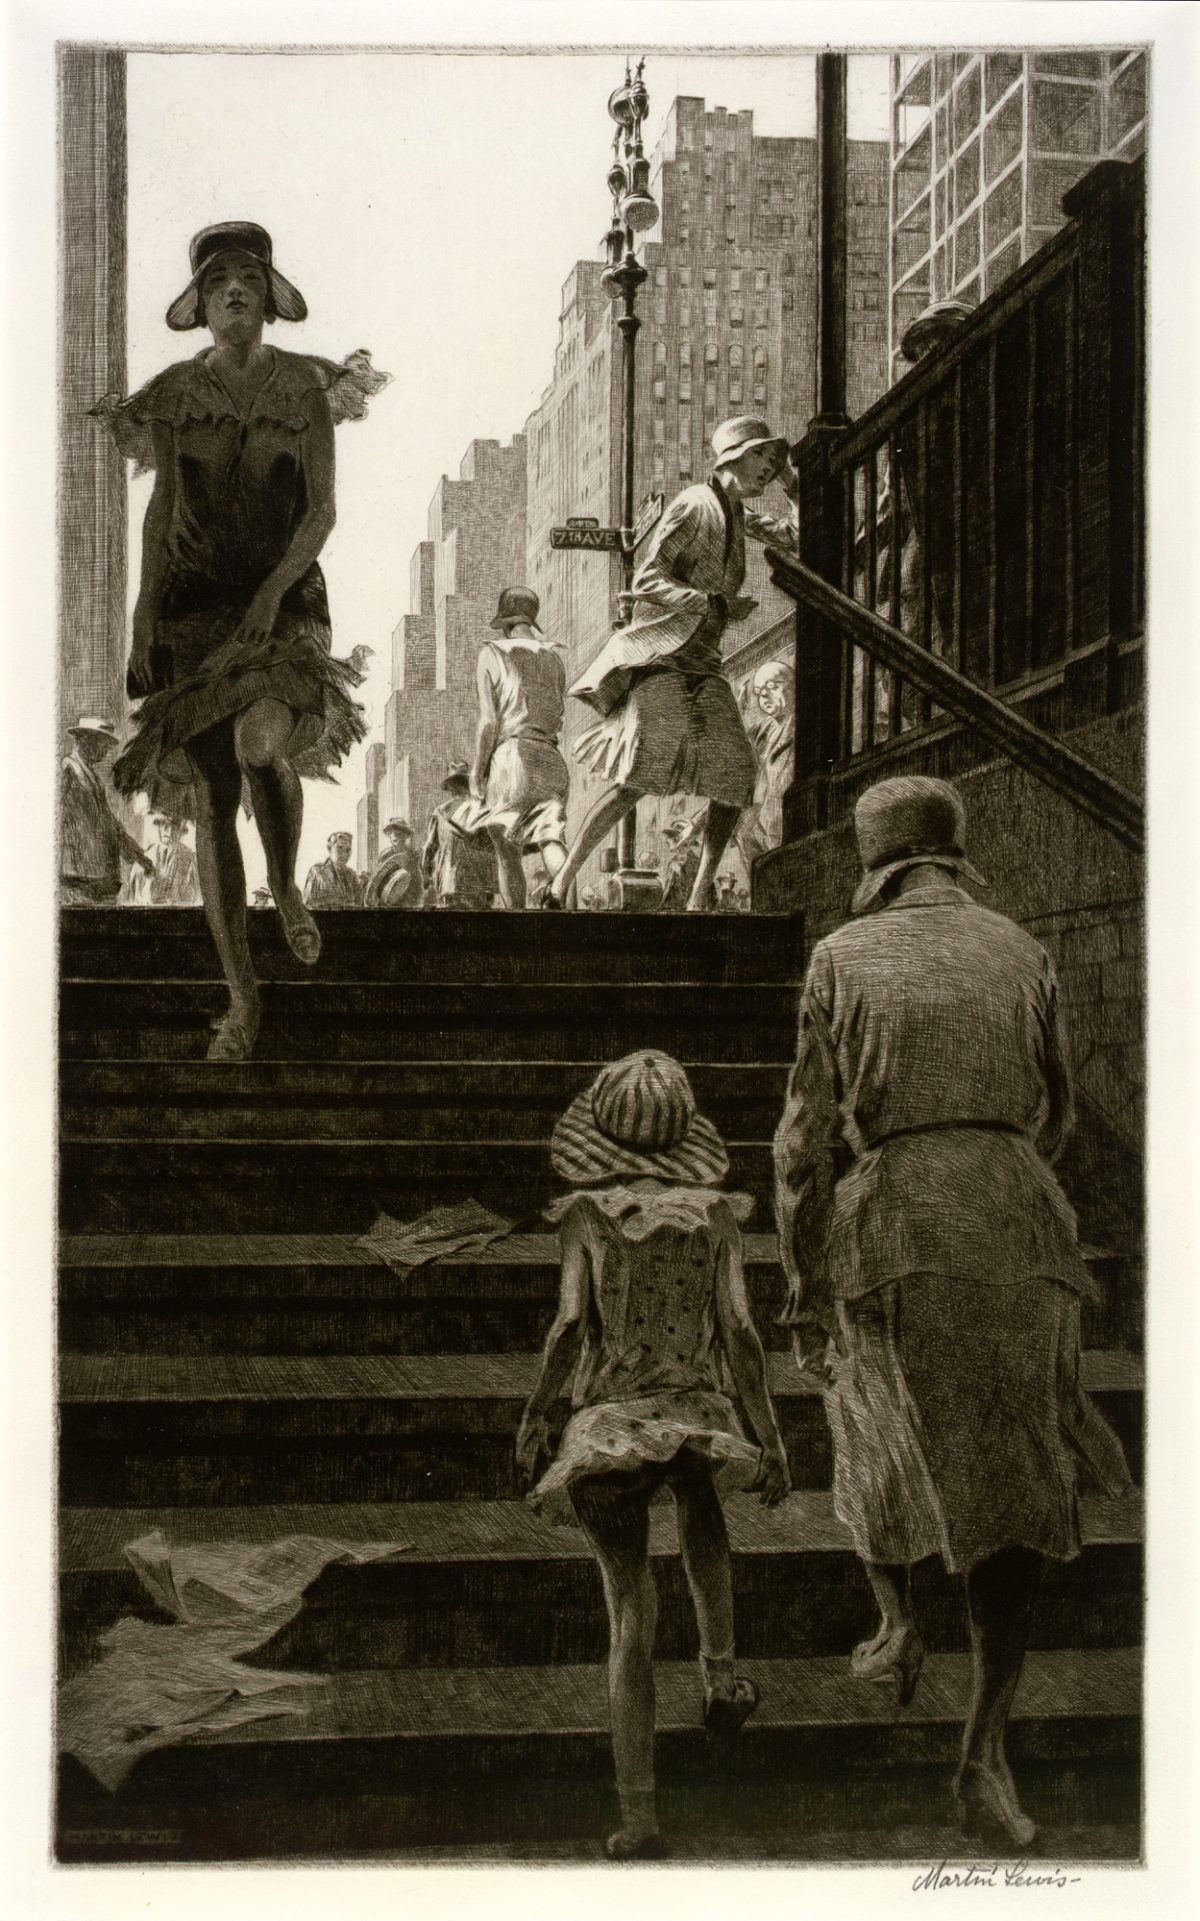 SUBWAY STEPS Martin Lewis 1930 drypoint on paper